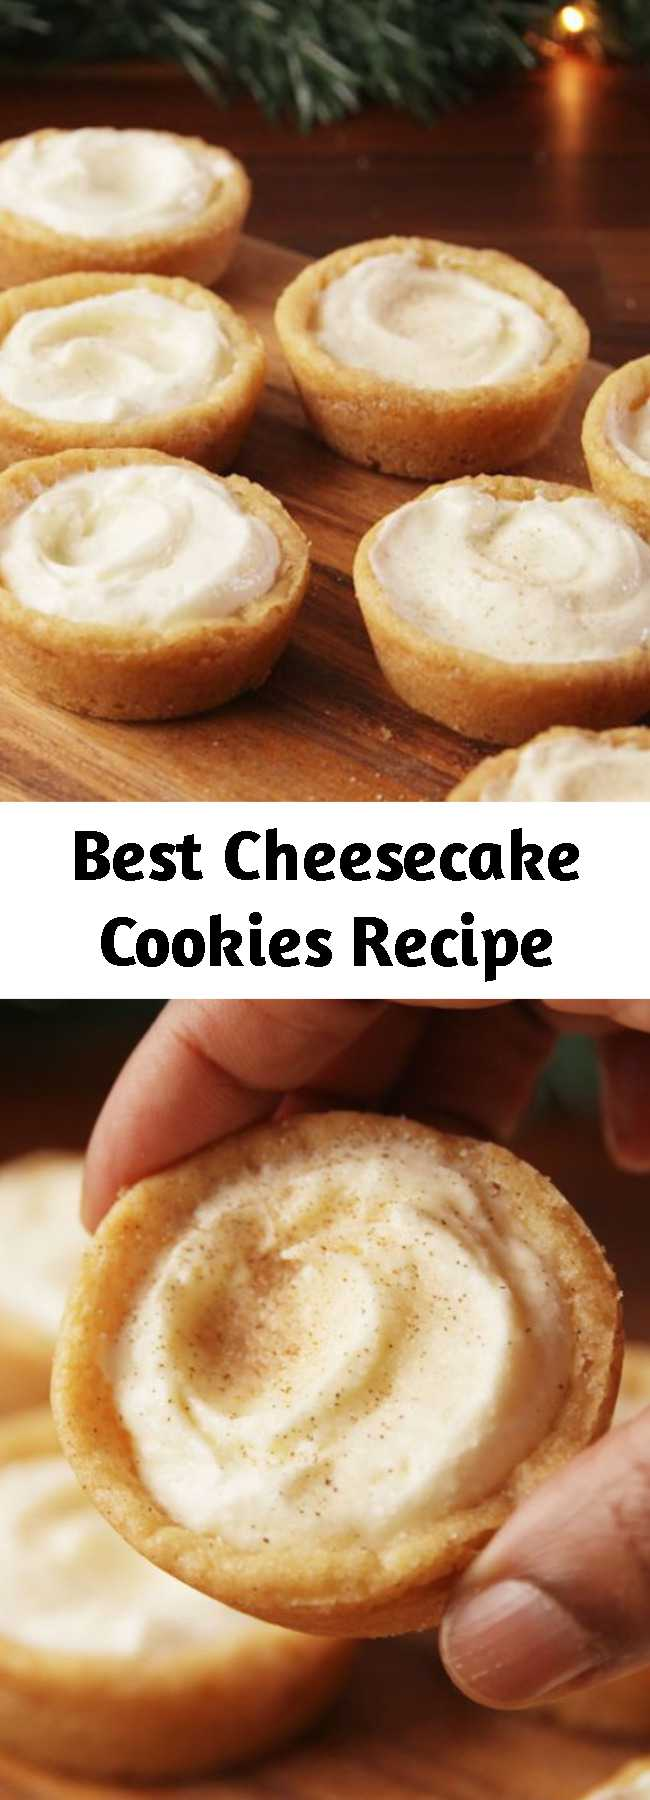 Best Cheesecake Cookies Recipe - Small bites of heaven. #food #pastryporn #holiday #christmas #easyrecipe #recipe #kids #ideas #inspiration #hacks